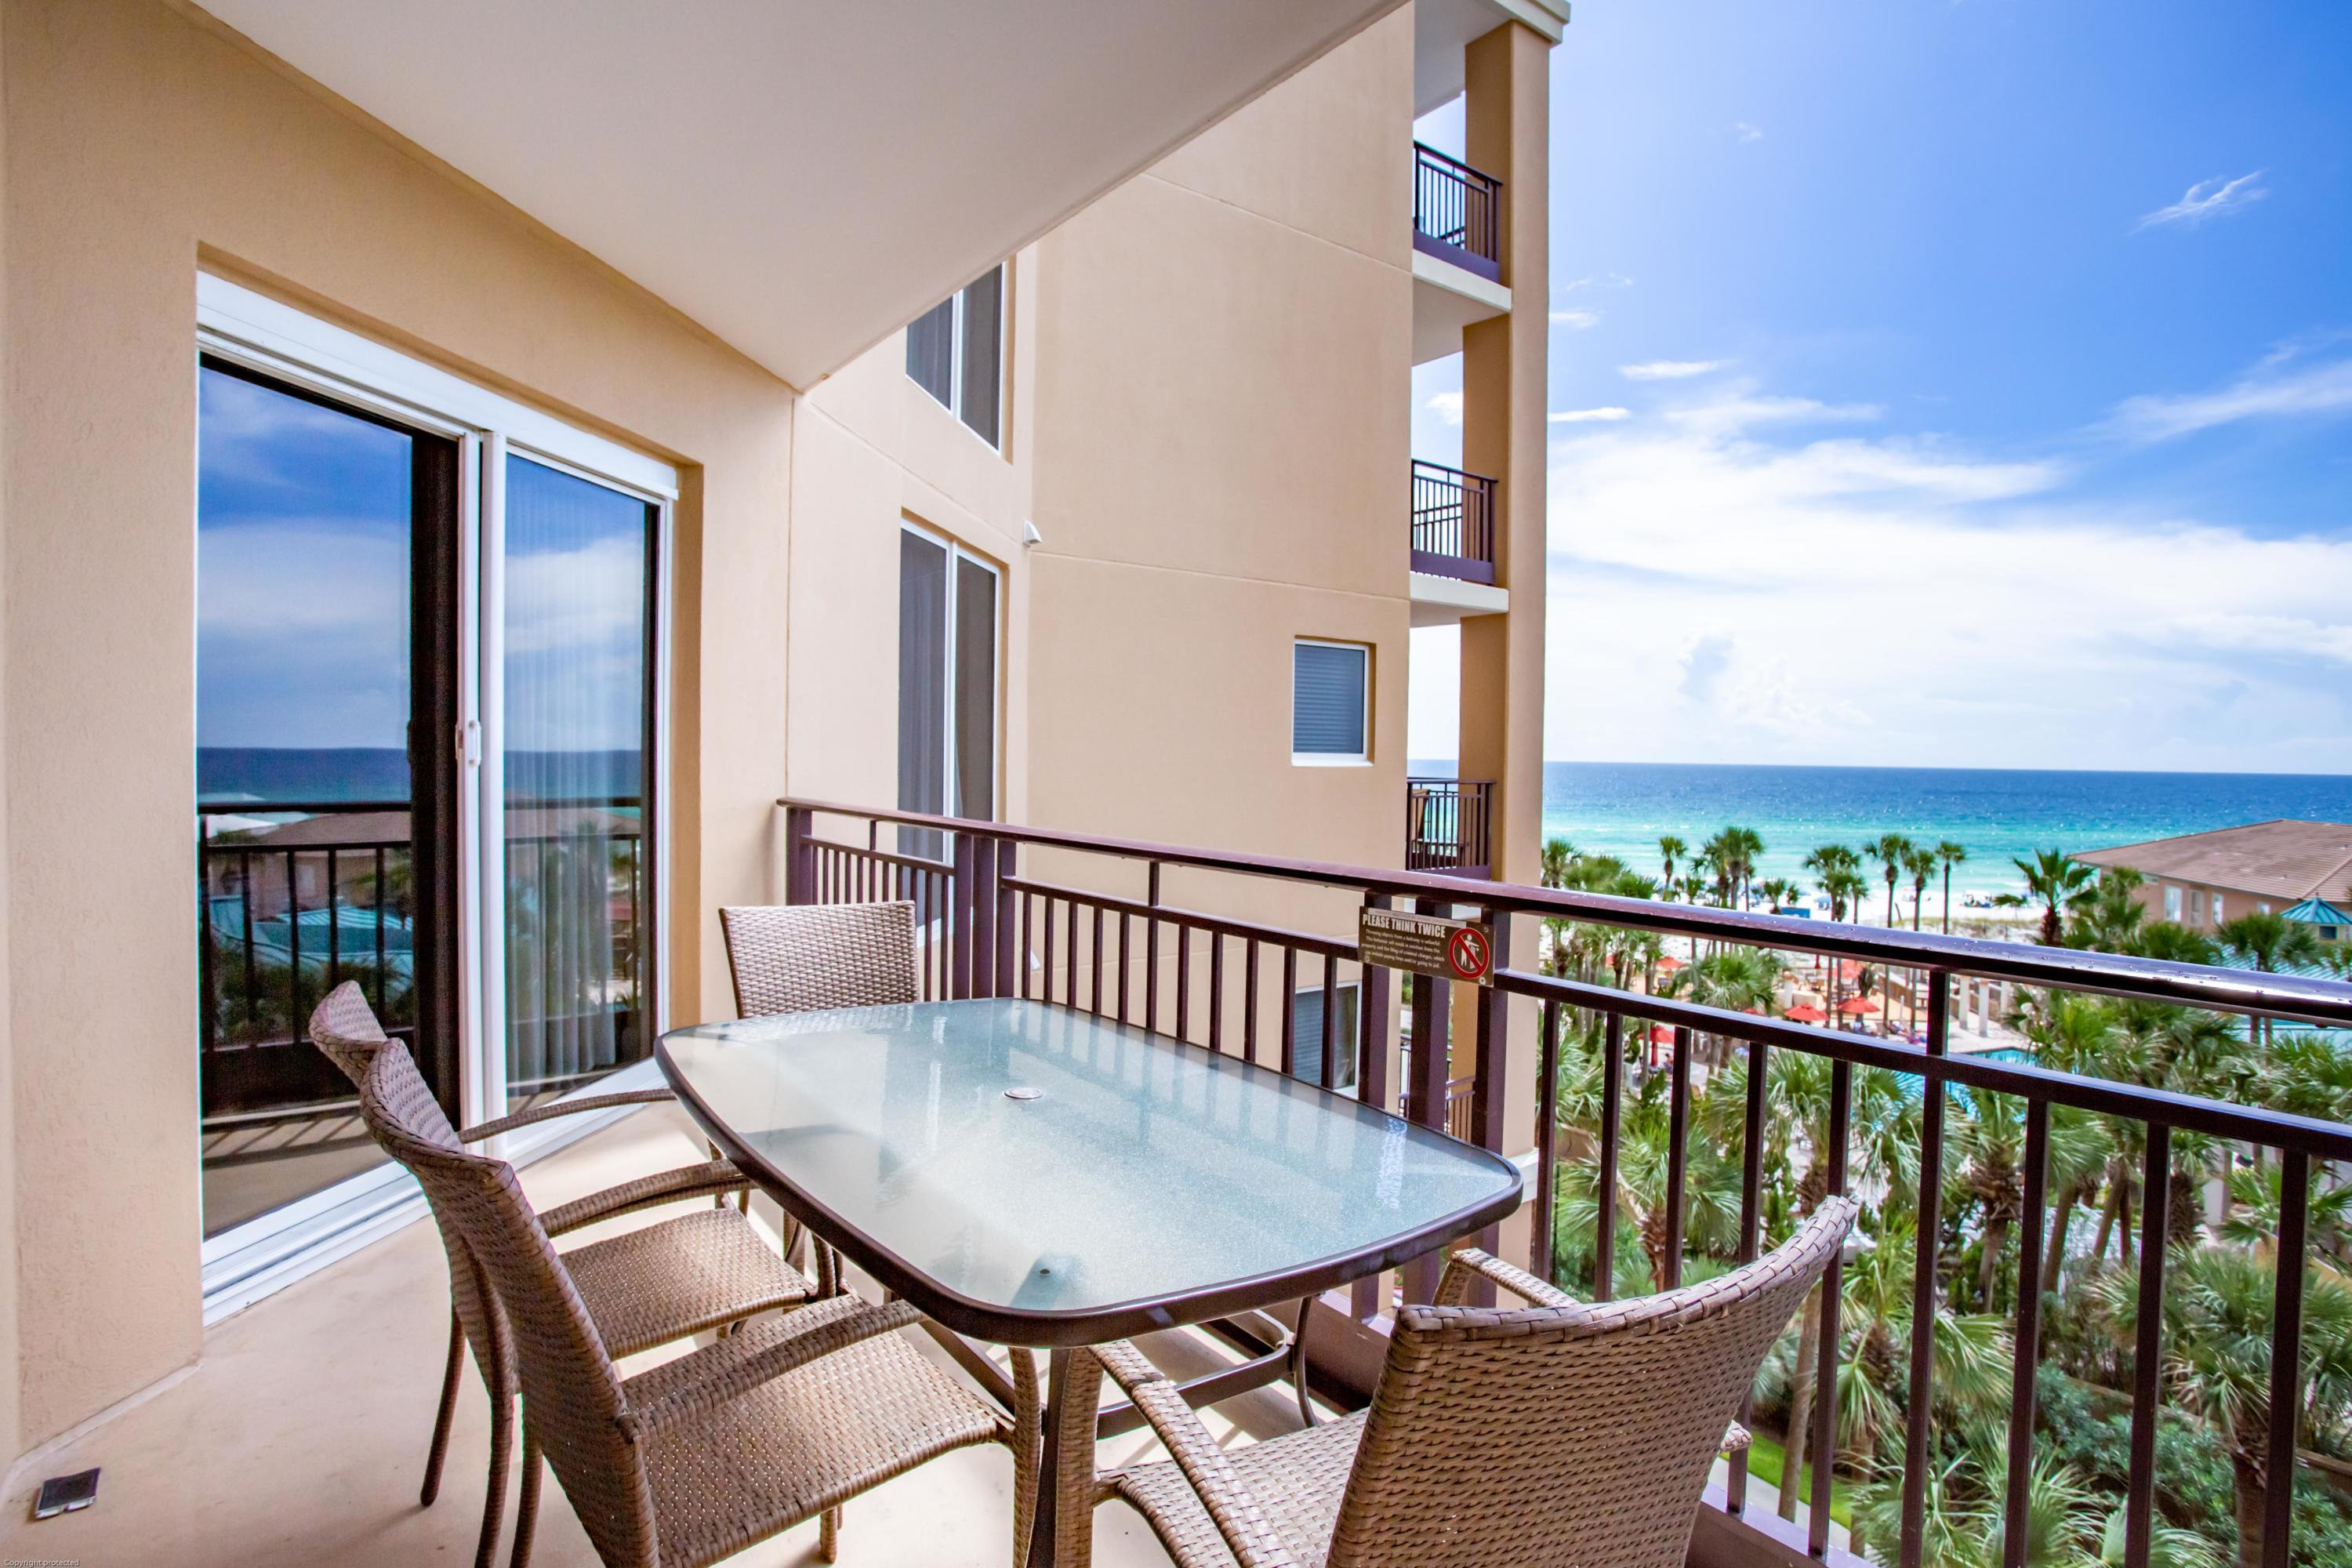 A 2 Bedroom 2 Bedroom Westwinds At Sandestin Condo Condominium